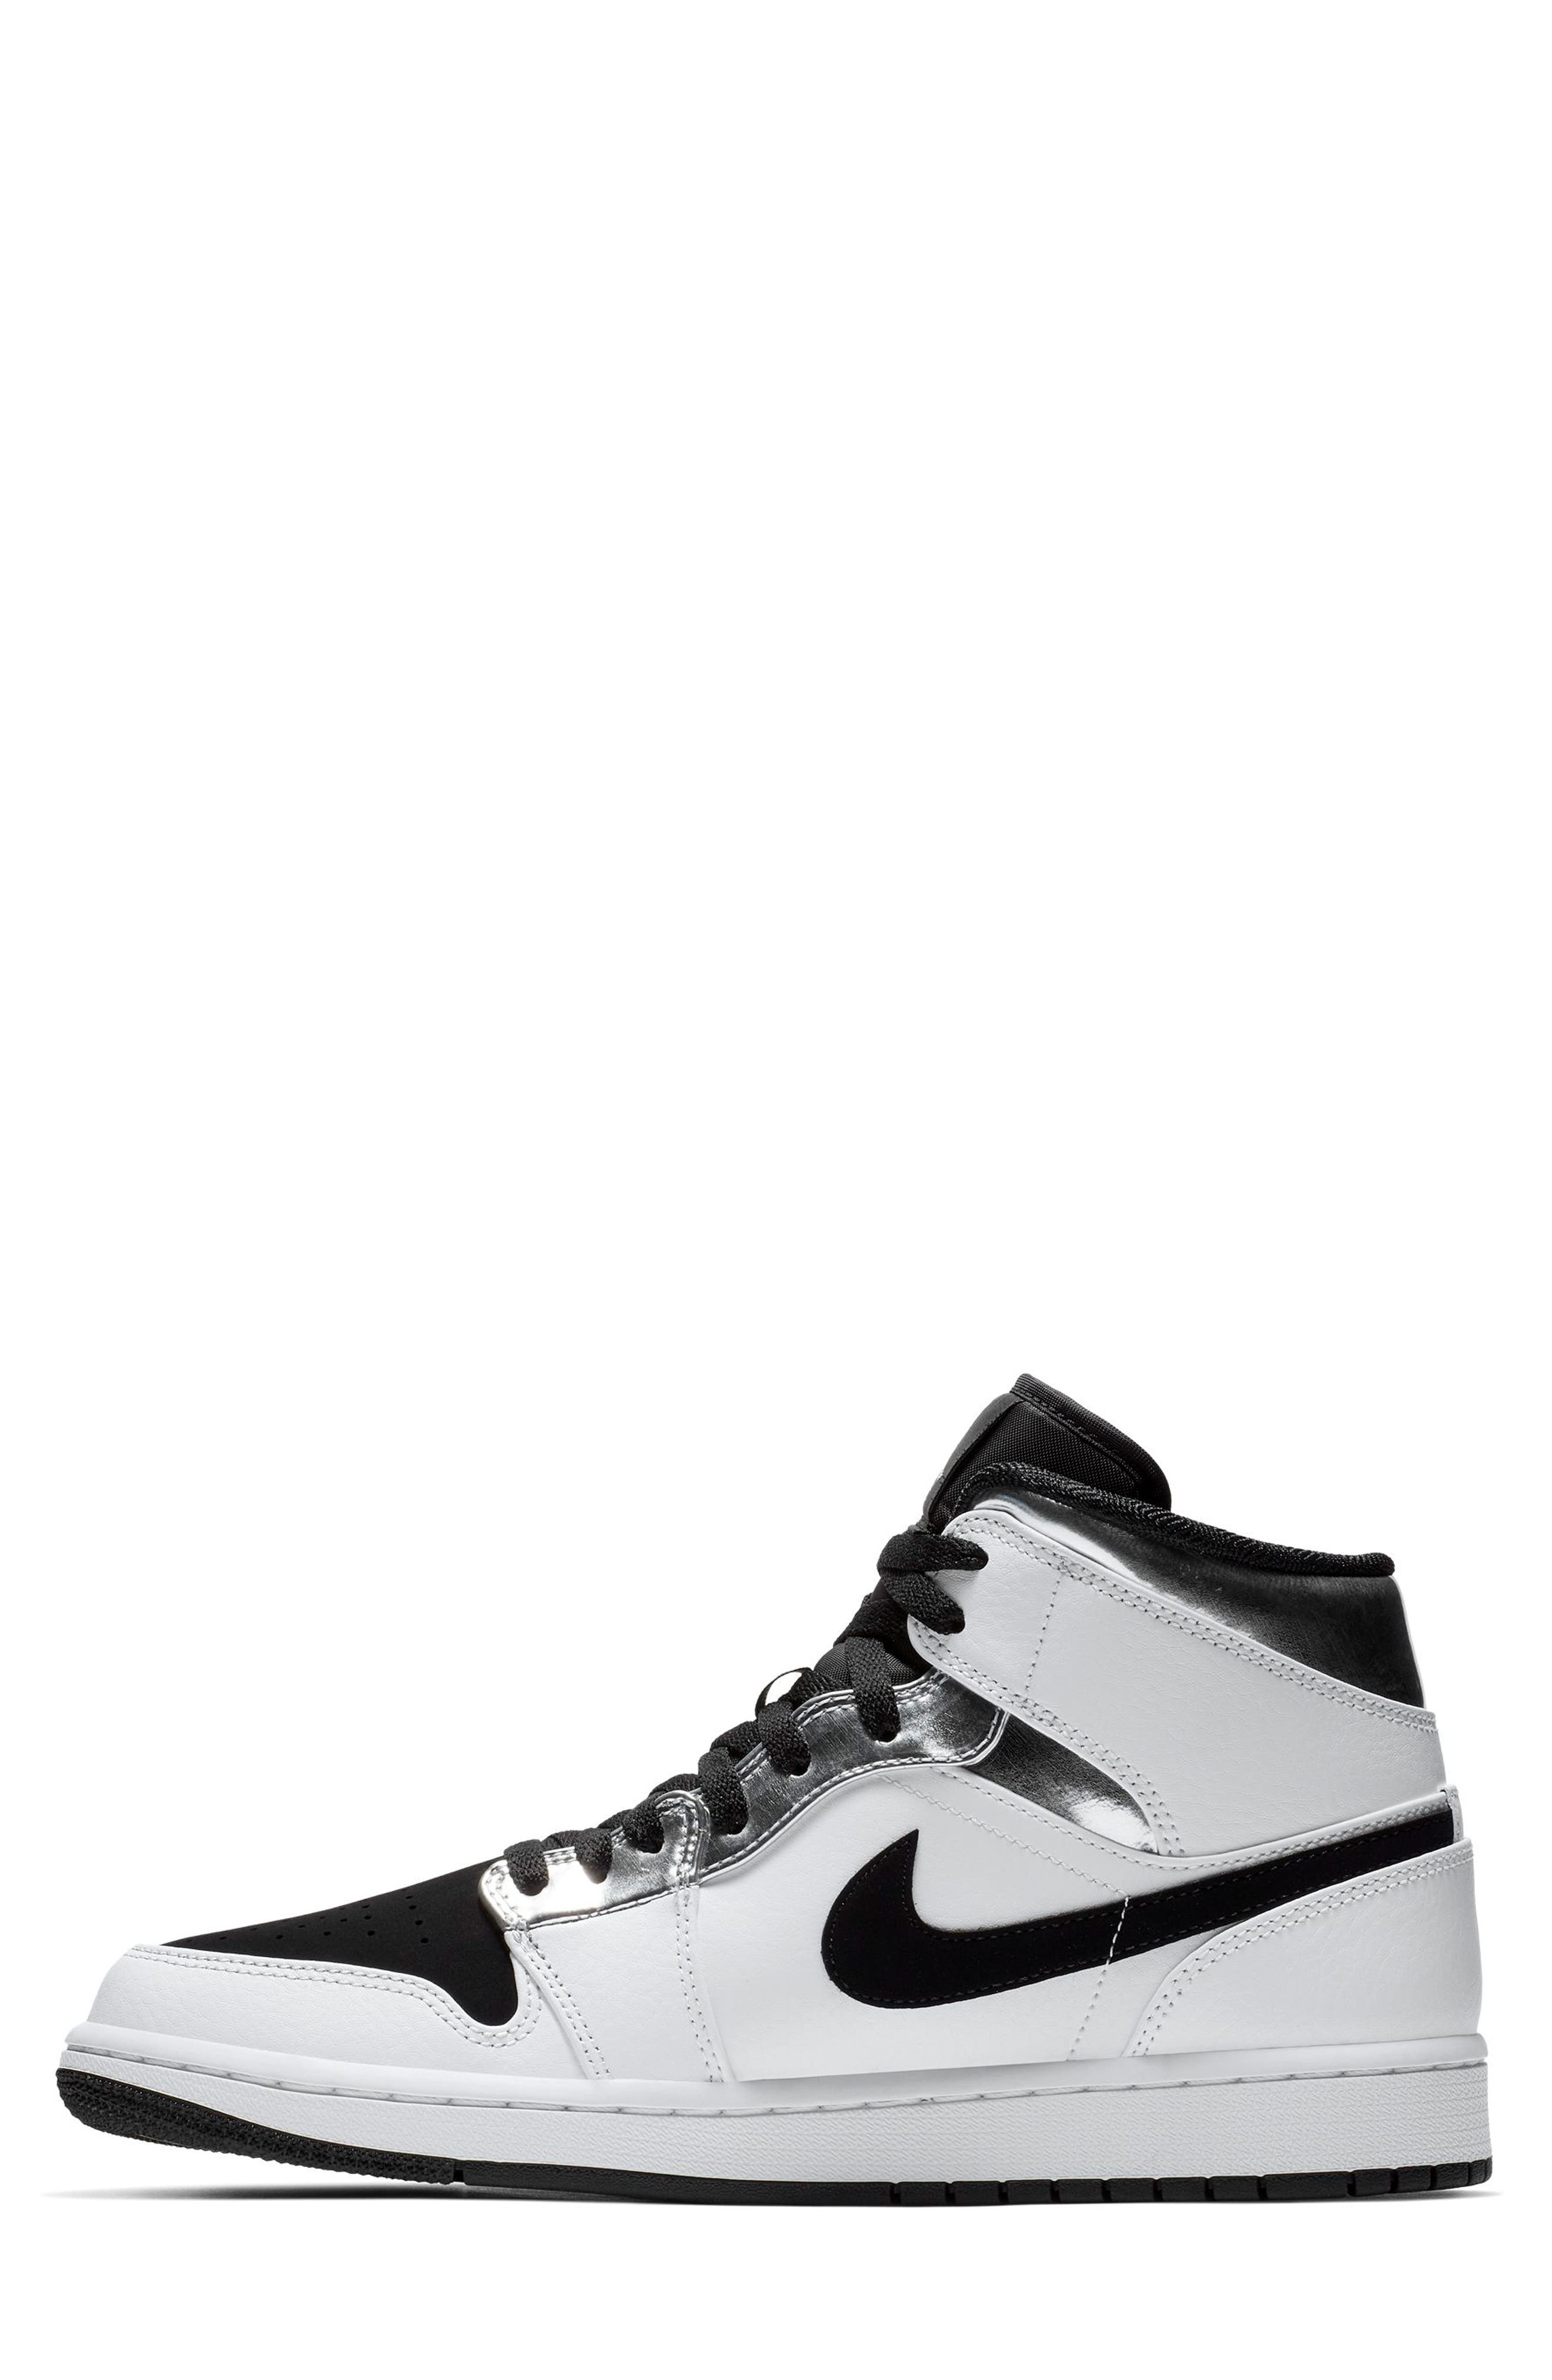 NIKE, 'Air Jordan 1 Mid' Sneaker, Alternate thumbnail 7, color, WHITE/ METALLIC SILVER/ BLACK